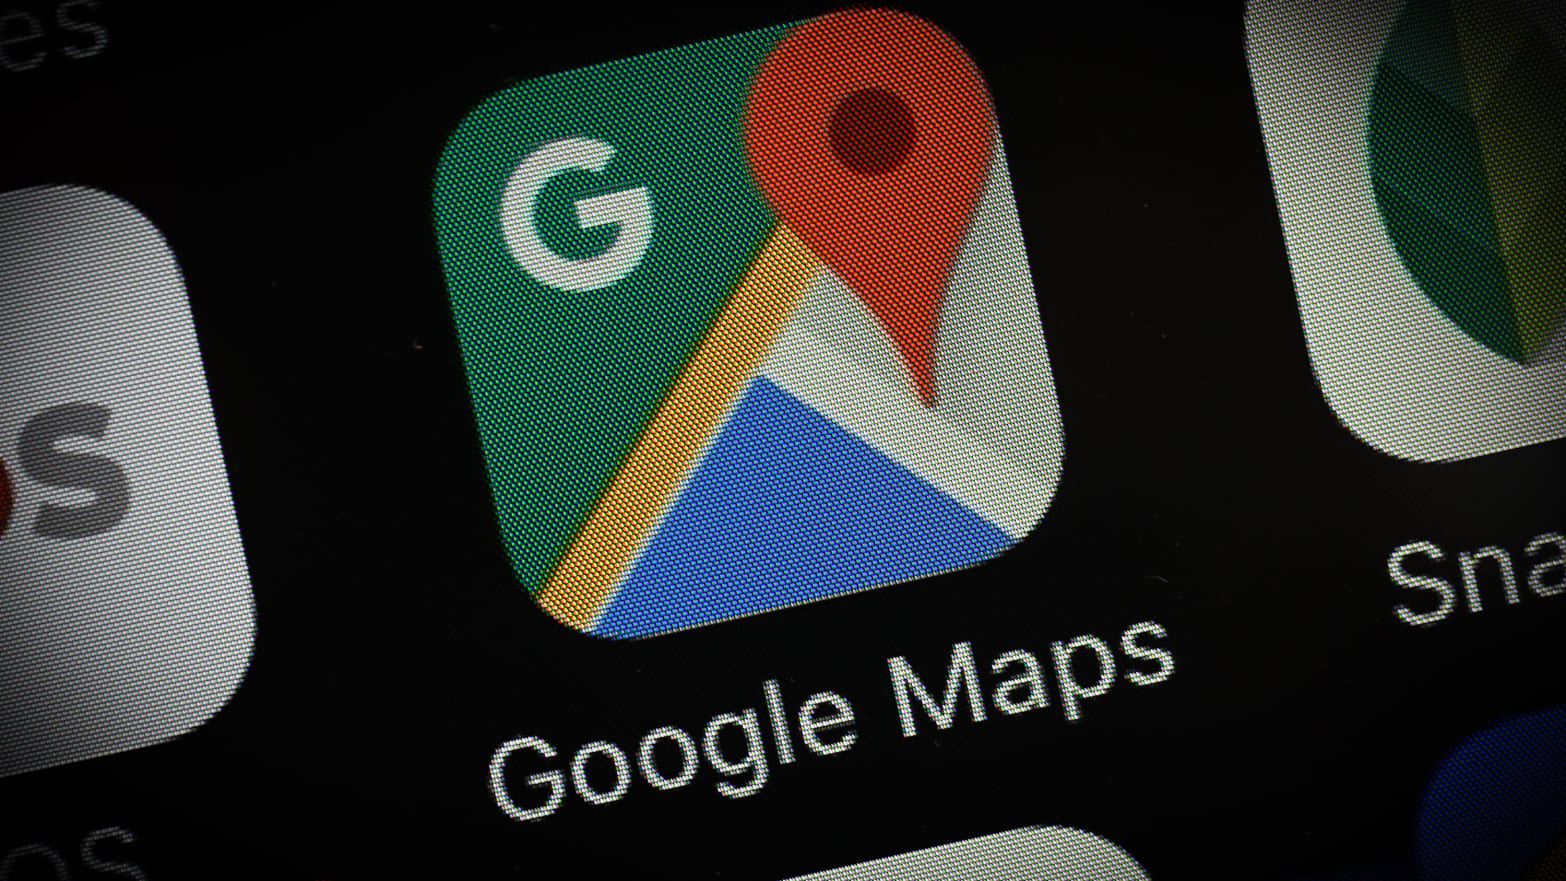 Google Maps Banned on Sardinia? Mayor Wants Service Blocked After Putting Tourists in Danger